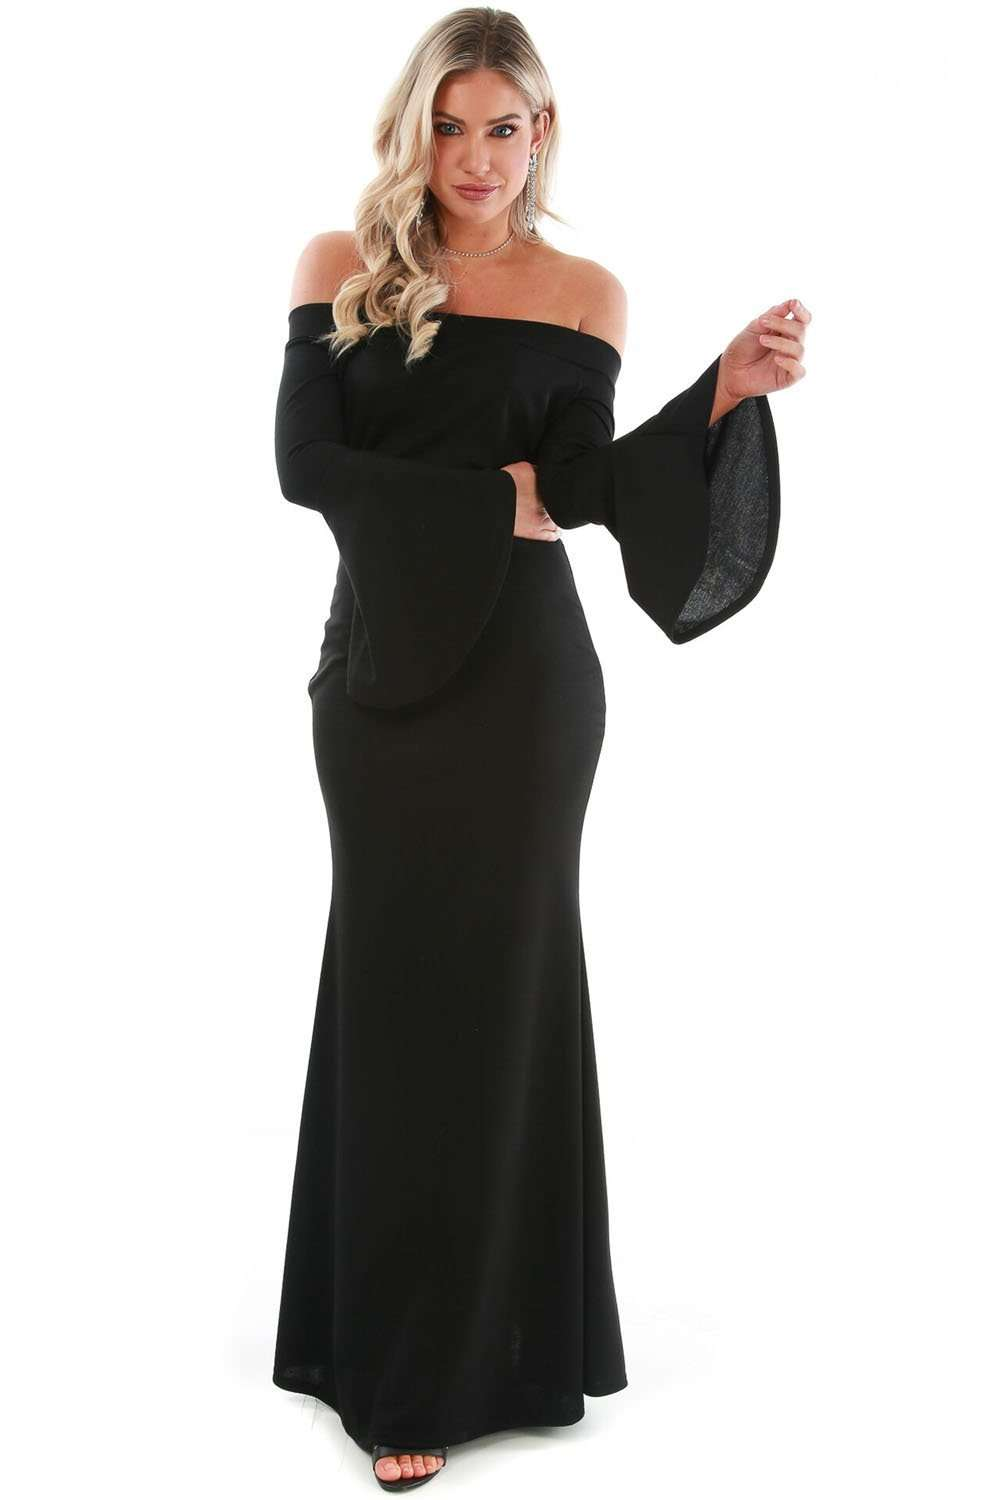 Callie Flare Sleeve Bardot Fishtail Maxi Dress - bejealous-com